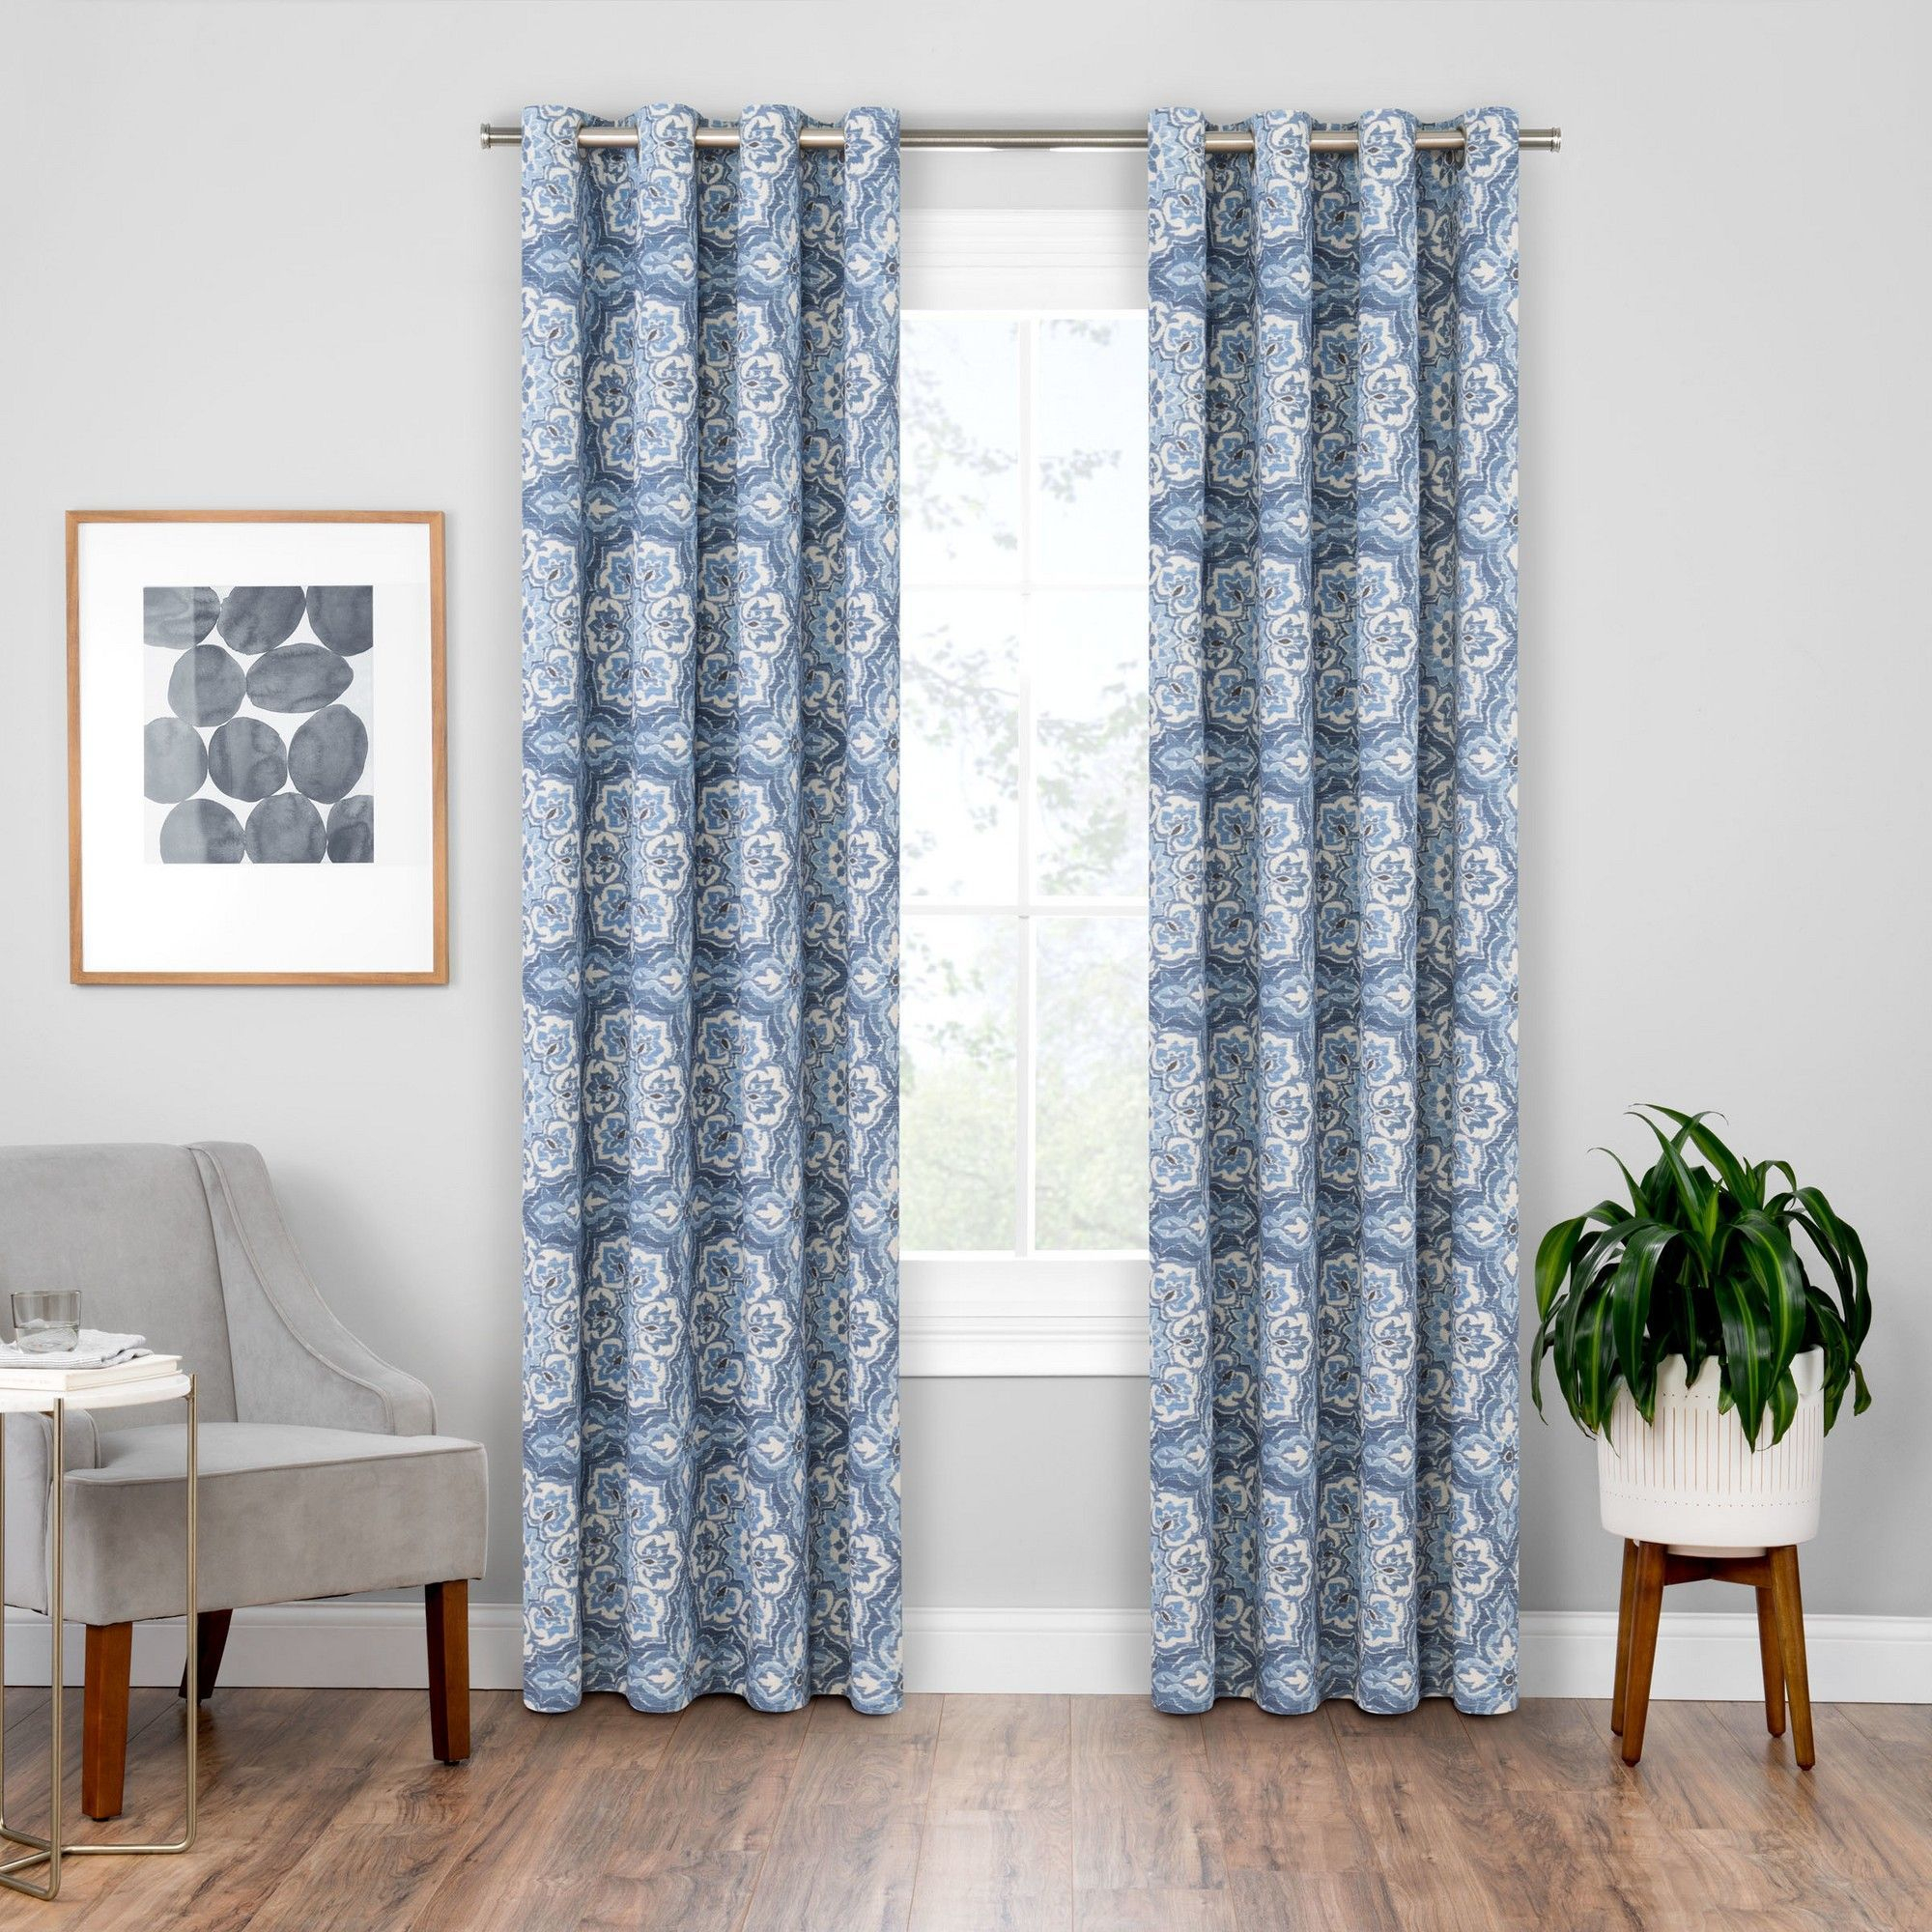 Benetta Blackout Window Curtains Spice/medallion 52x84 With Sunsmart Dahlia Paisley Printed Total Blackout Single Window Curtain Panels (View 21 of 30)